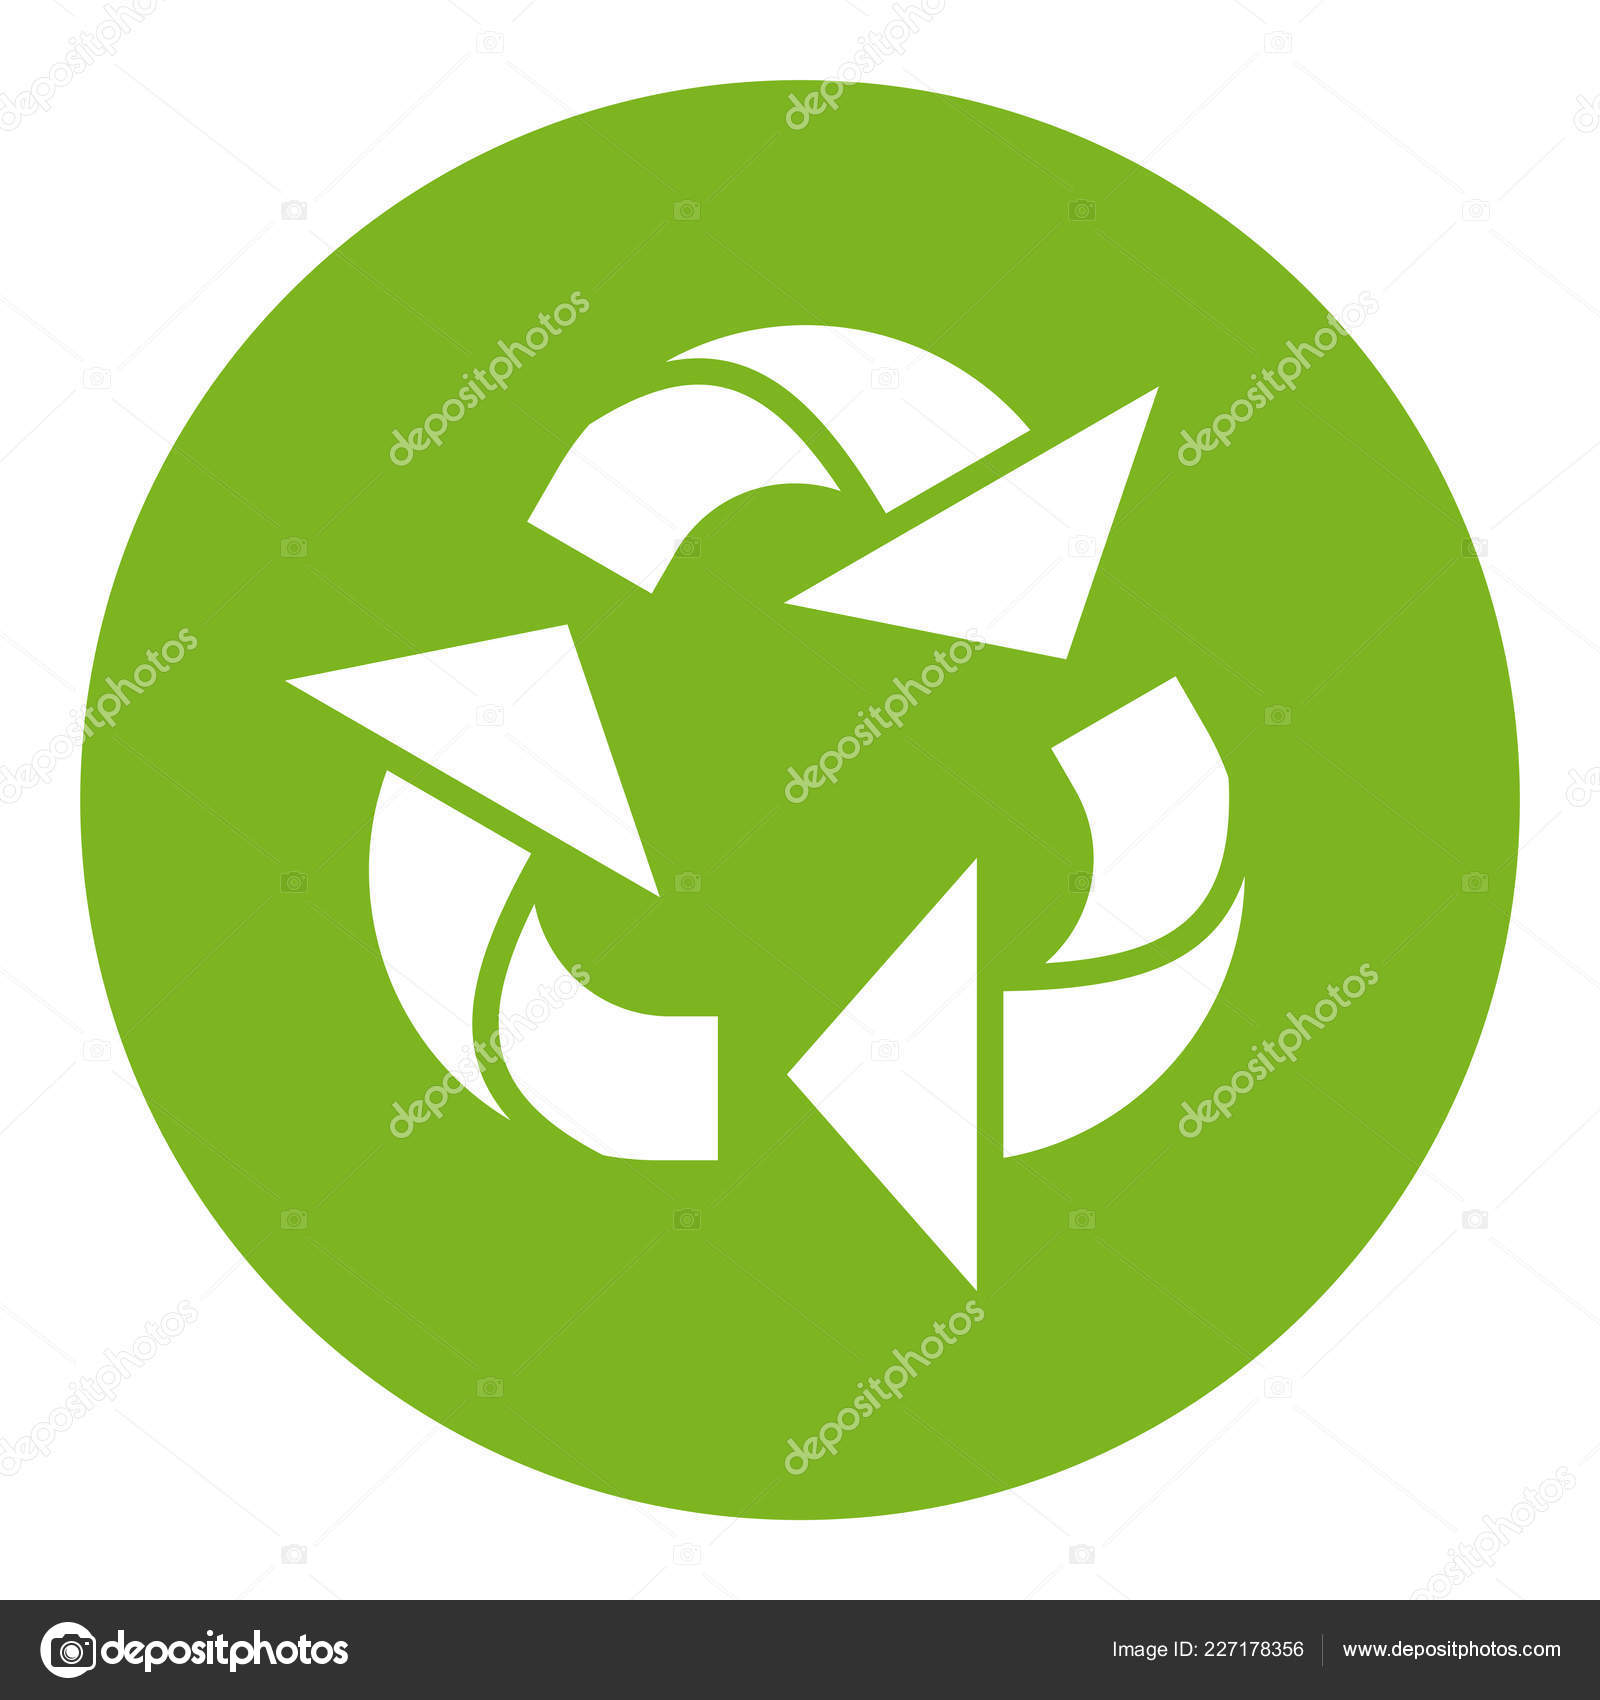 image relating to Recycling Sign Printable called Printable recycling symbol Cartoon recycle indicator Inventory